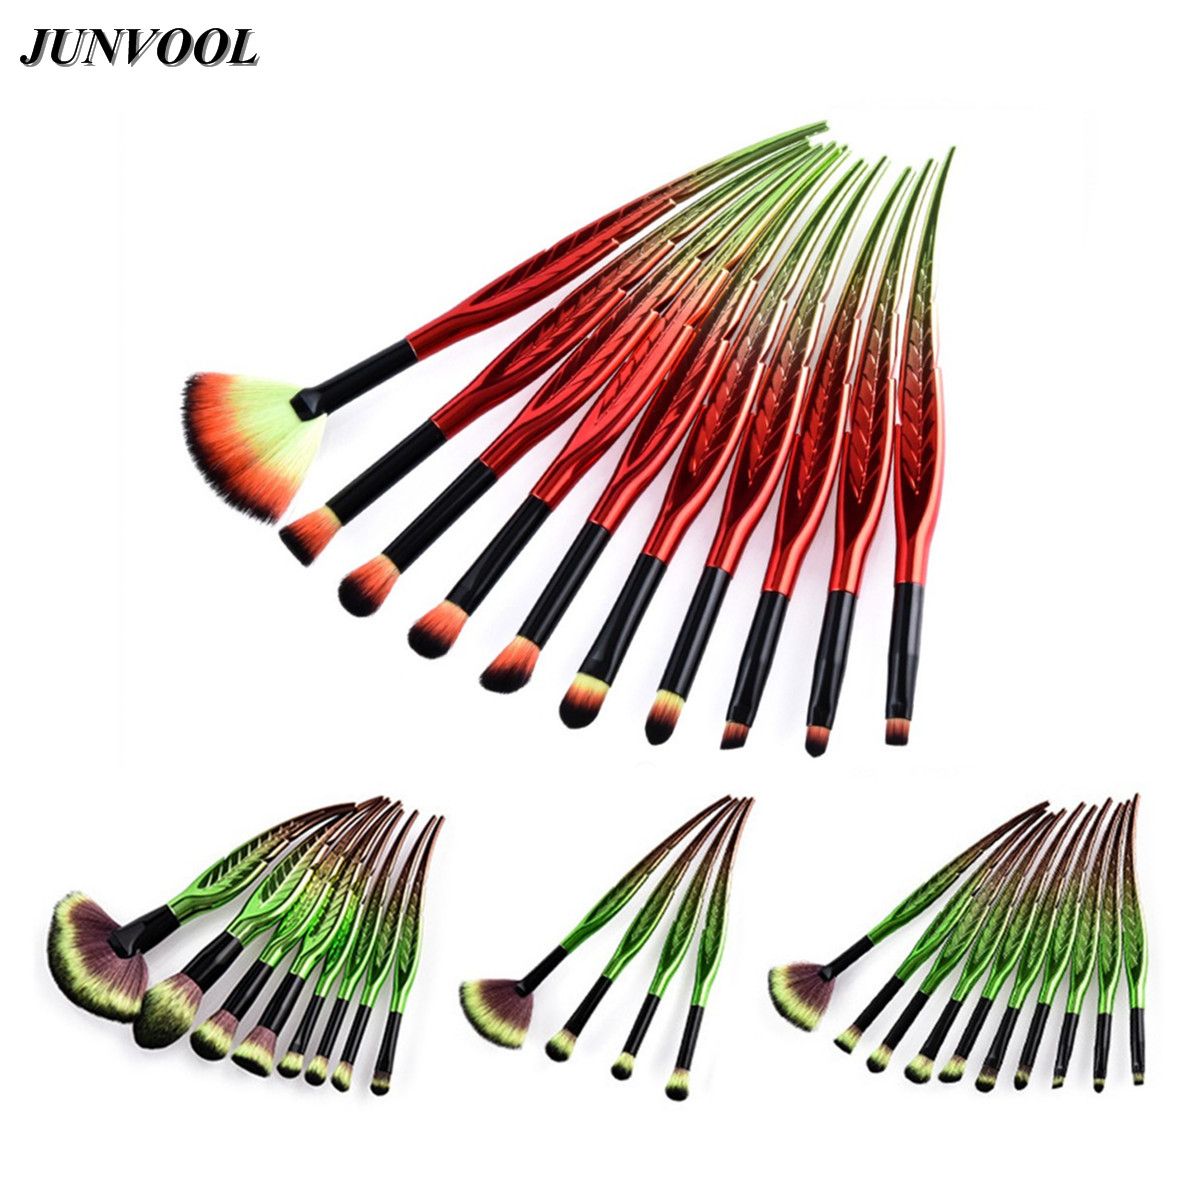 Leaves Handle Makeup Brushes Set Cosmetic Foundation Eyebrow Eyeliner Blush Powder Concealer Blending Fan Brush Green Red Newest 24pcs makeup brushes set cosmetic make up tools set fan foundation powder brush eyeliner brushes leather case with pink puff